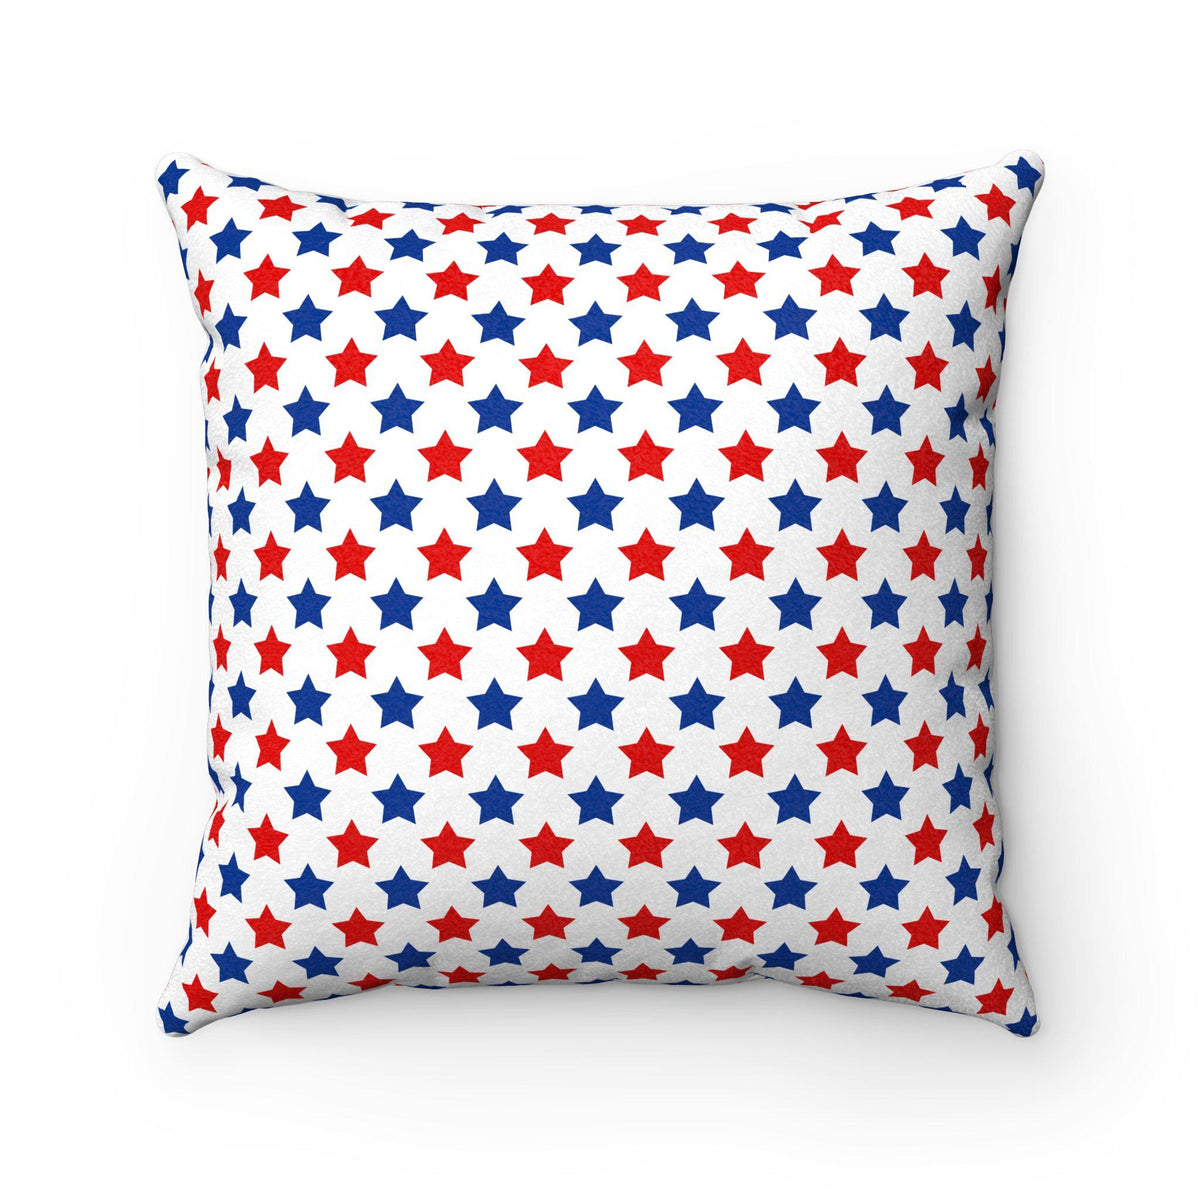 Maison d'Elite American stars decorative cushion-Home Decor - Decorative Accents - Pillows & Throws - Decorative Pillows-Maison d'Elite-14x14-Red/Blue-Faux suede-Très Elite